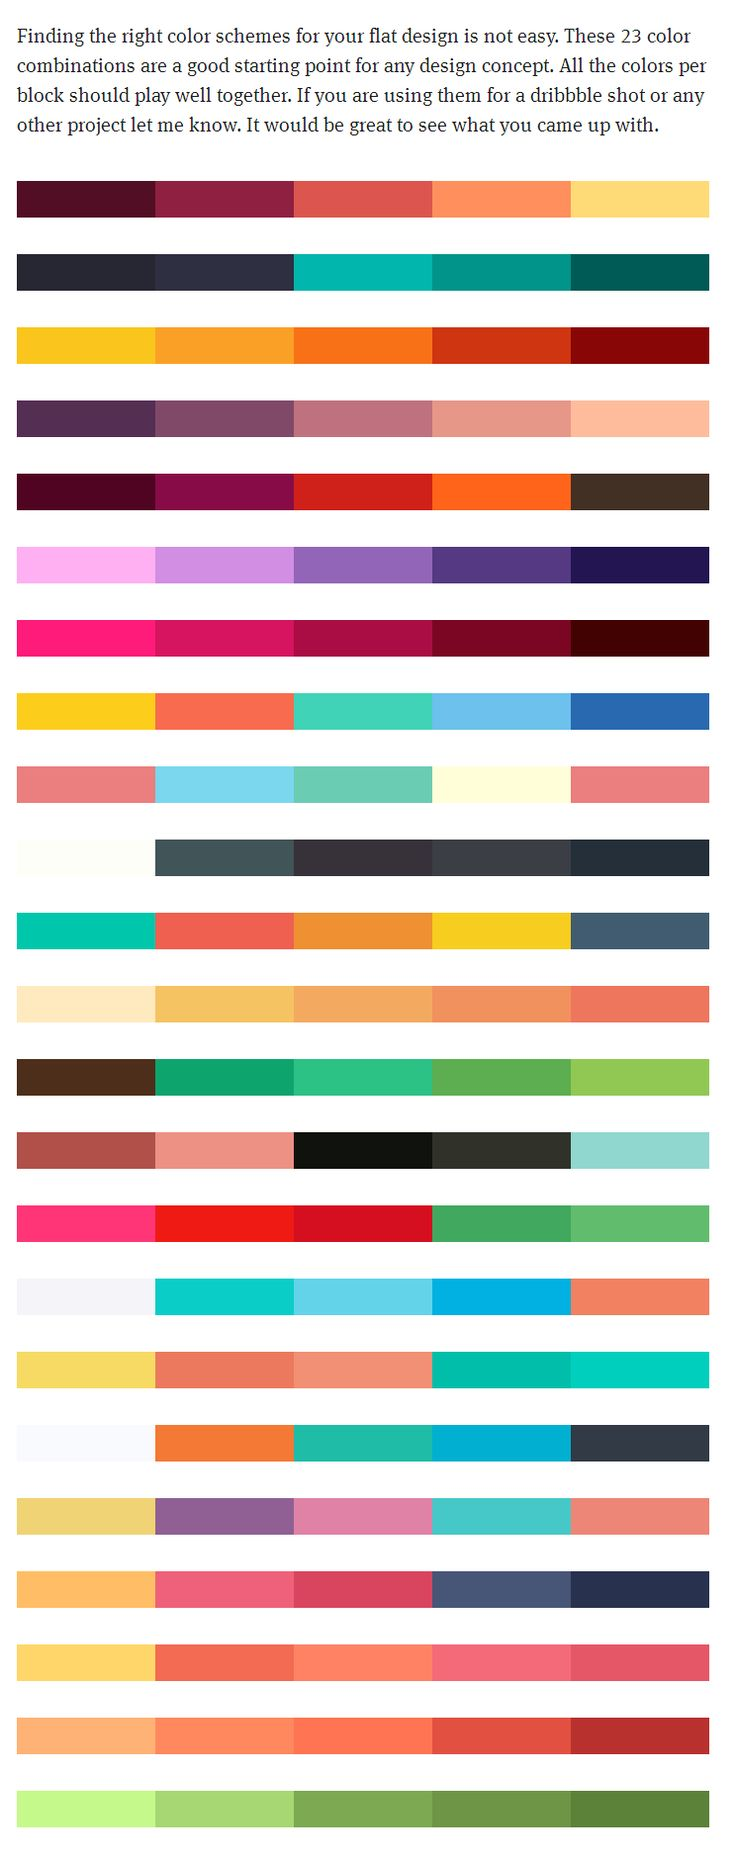 23 Color Schemes As An Inspiration Or Starting Point For Your Flat UI Design